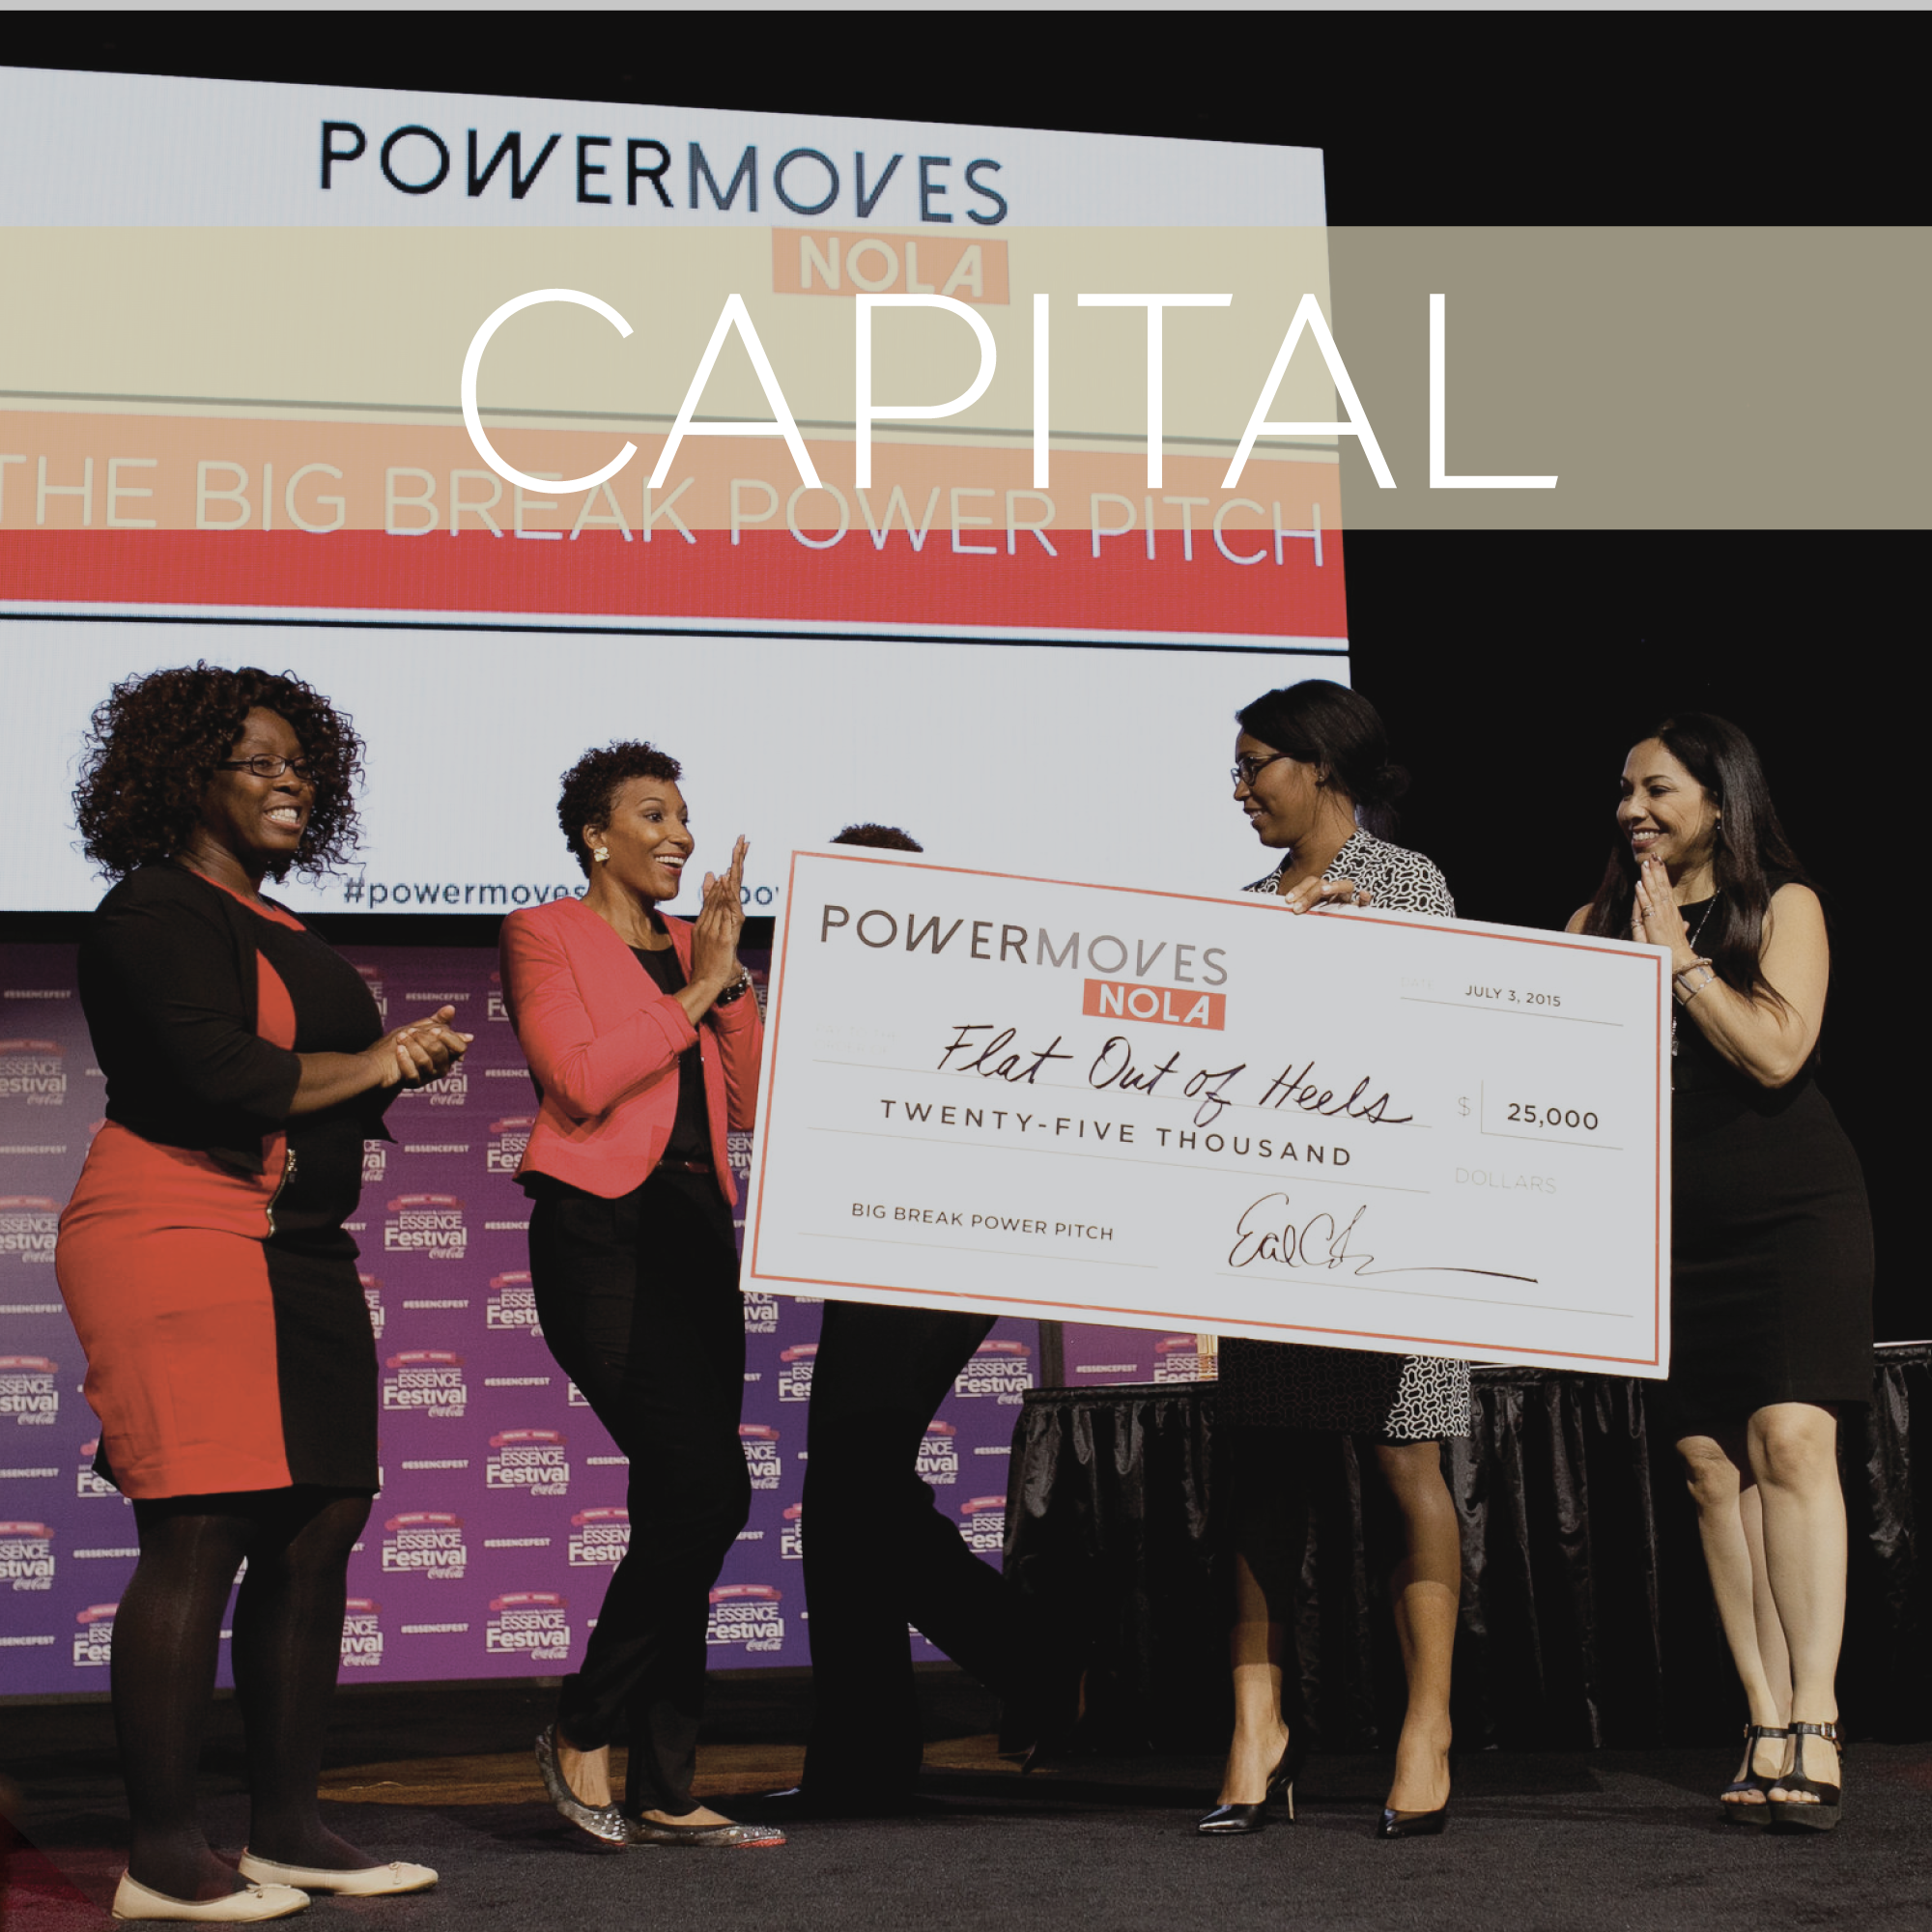 PowerMoves leads by example by funding our top founders and connecting them with investors and venture capitalist.